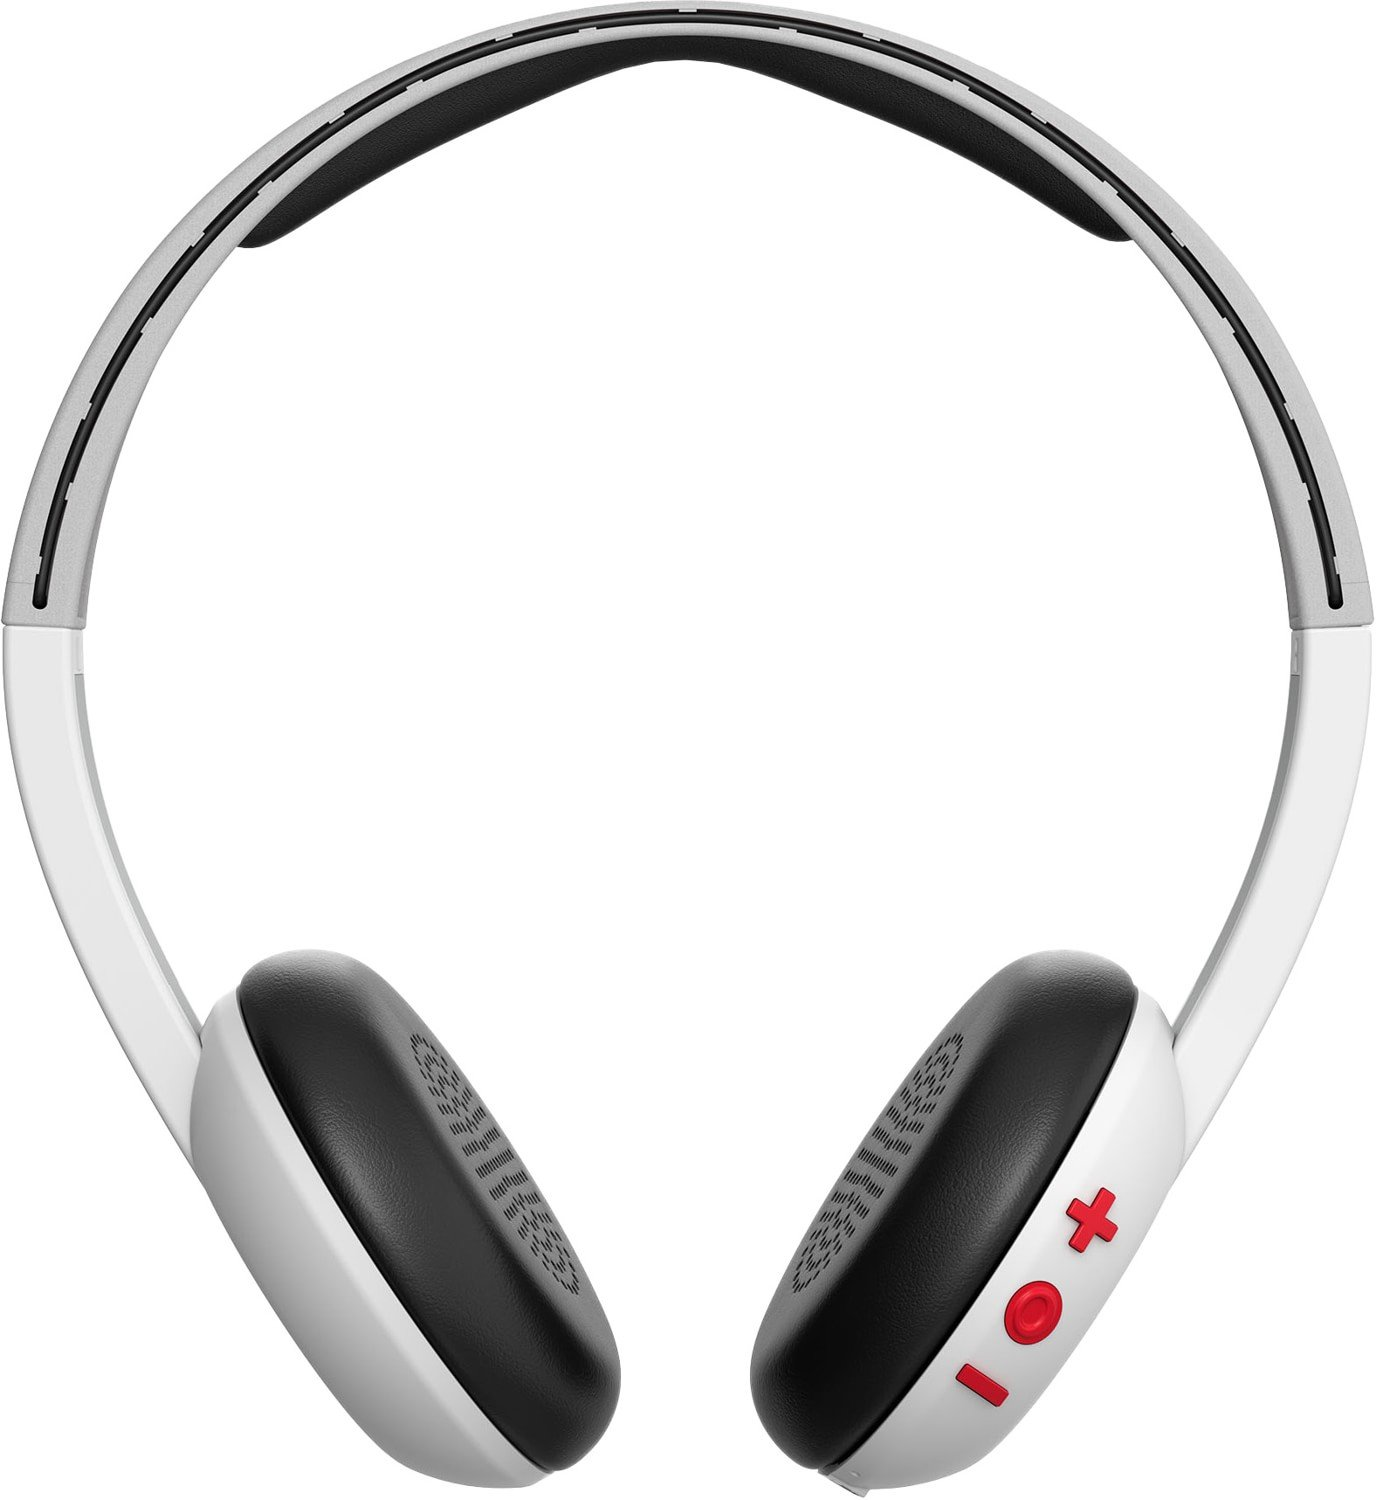 Uproar Headset Review (White/Gray)